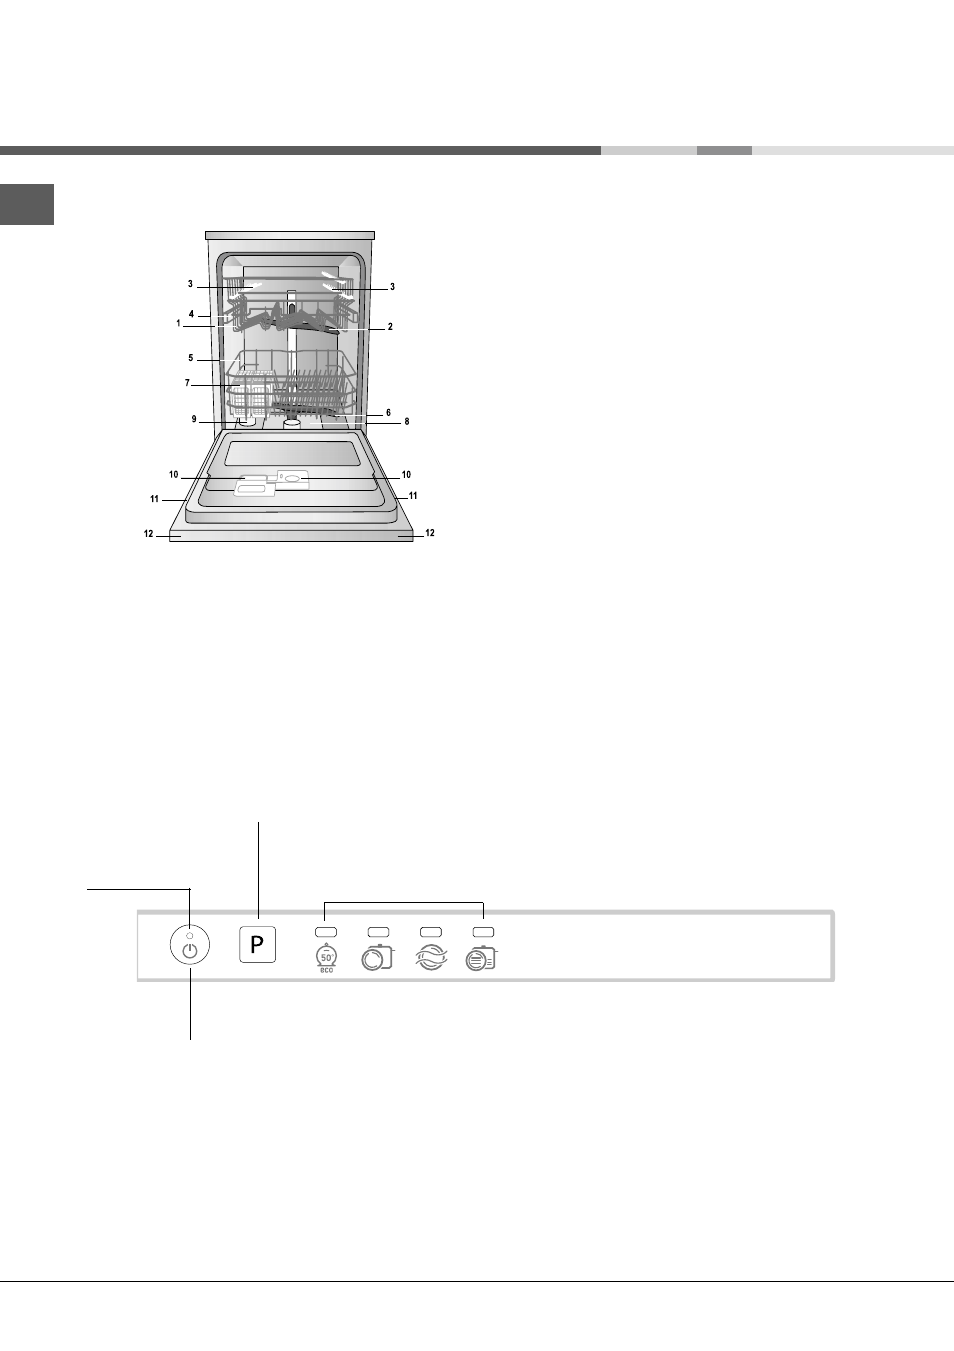 Description de l'appareil | Hotpoint Ariston LFT 114/HA User Manual | Page